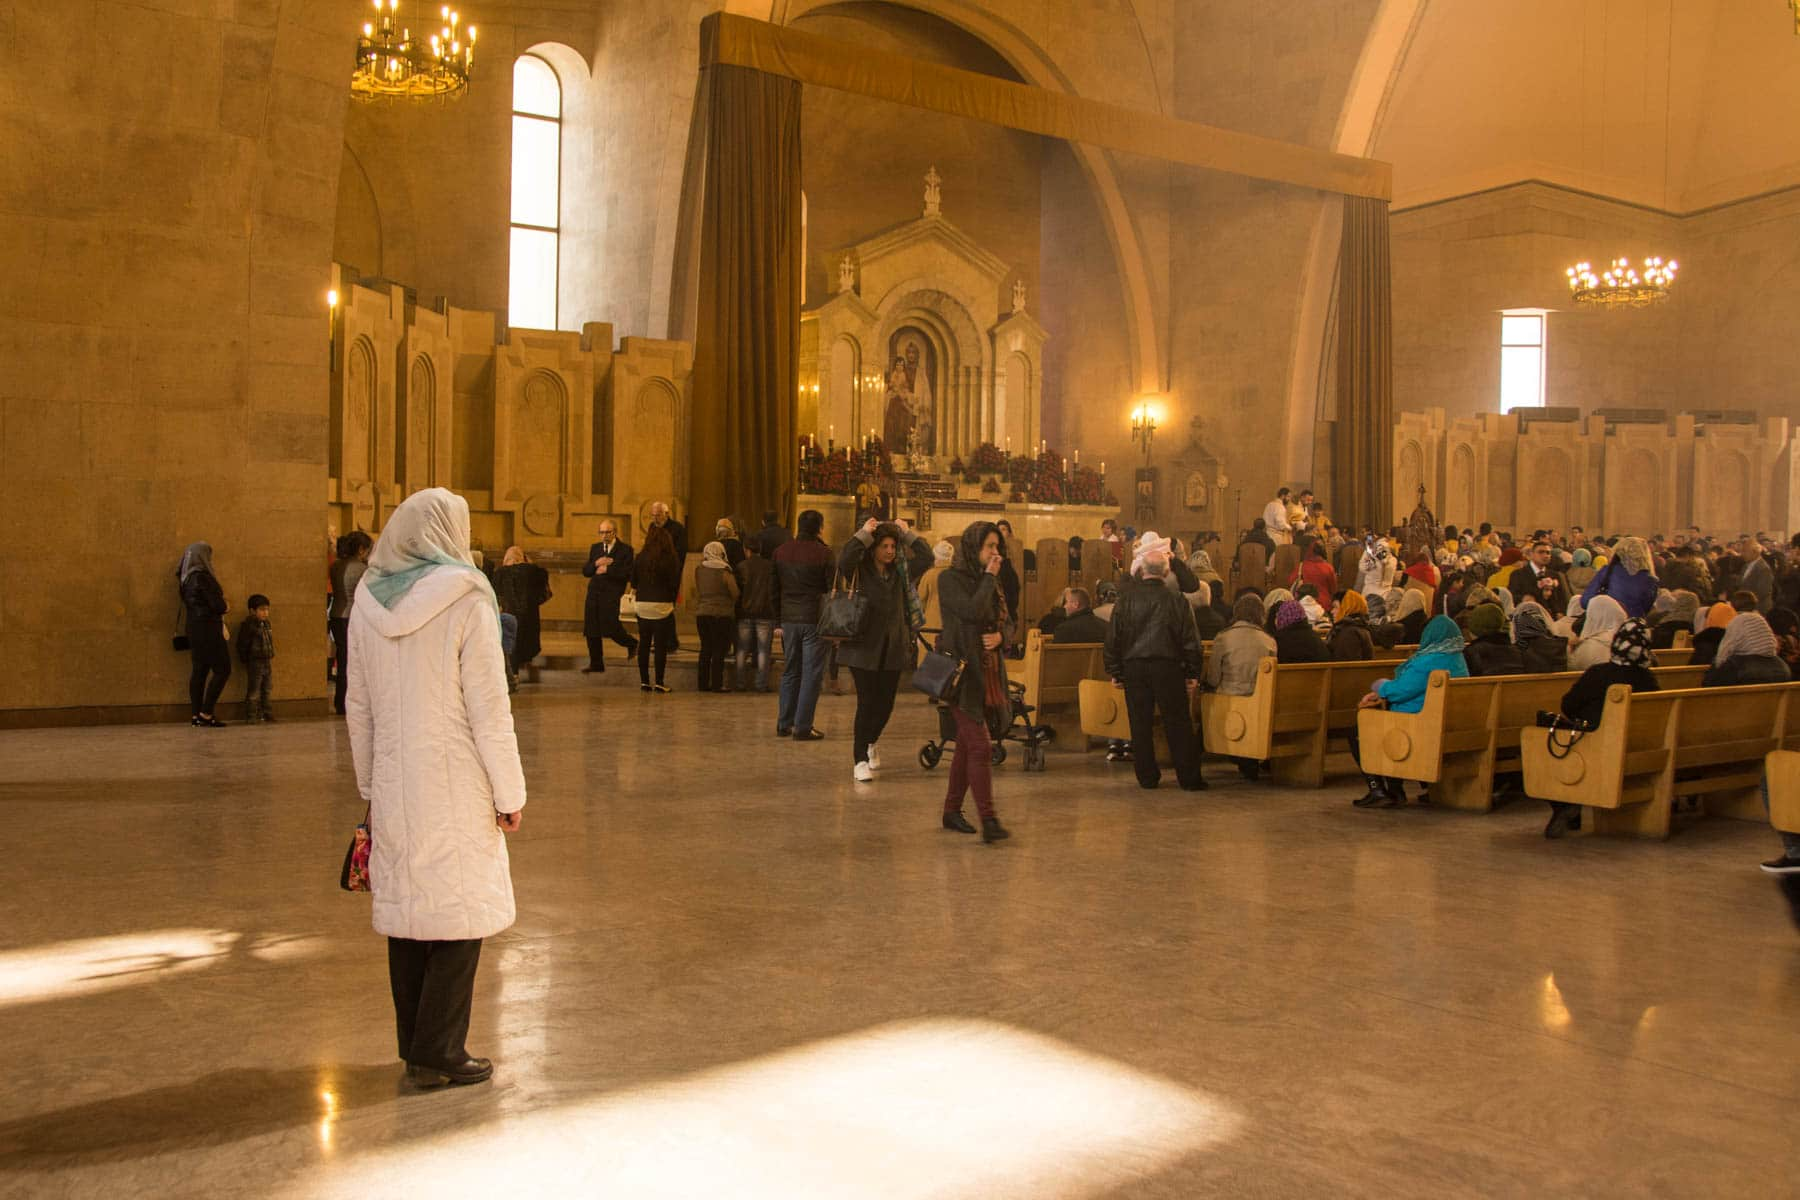 Easter in Armenia - A woman standing and observing mass in Gregory the Illuminator Cathedral in Yerevan for Easter in Armenia